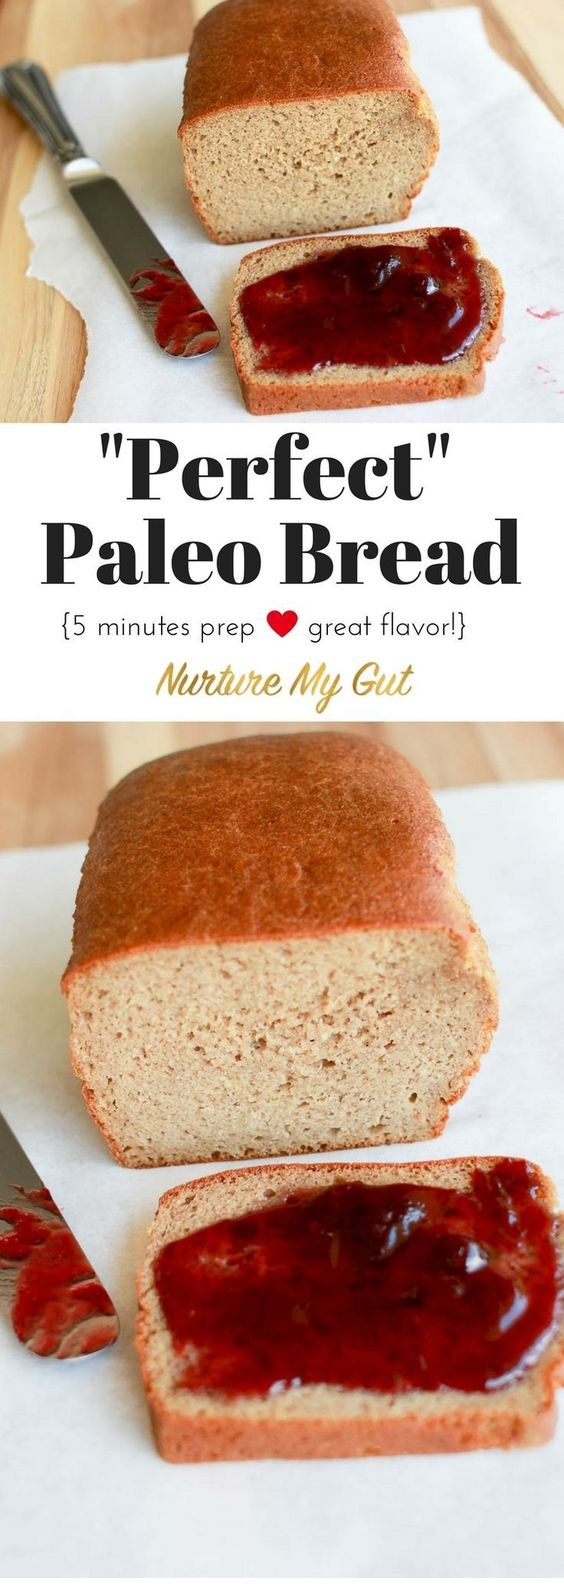 Perfect Paleo Bread (SAVORY)